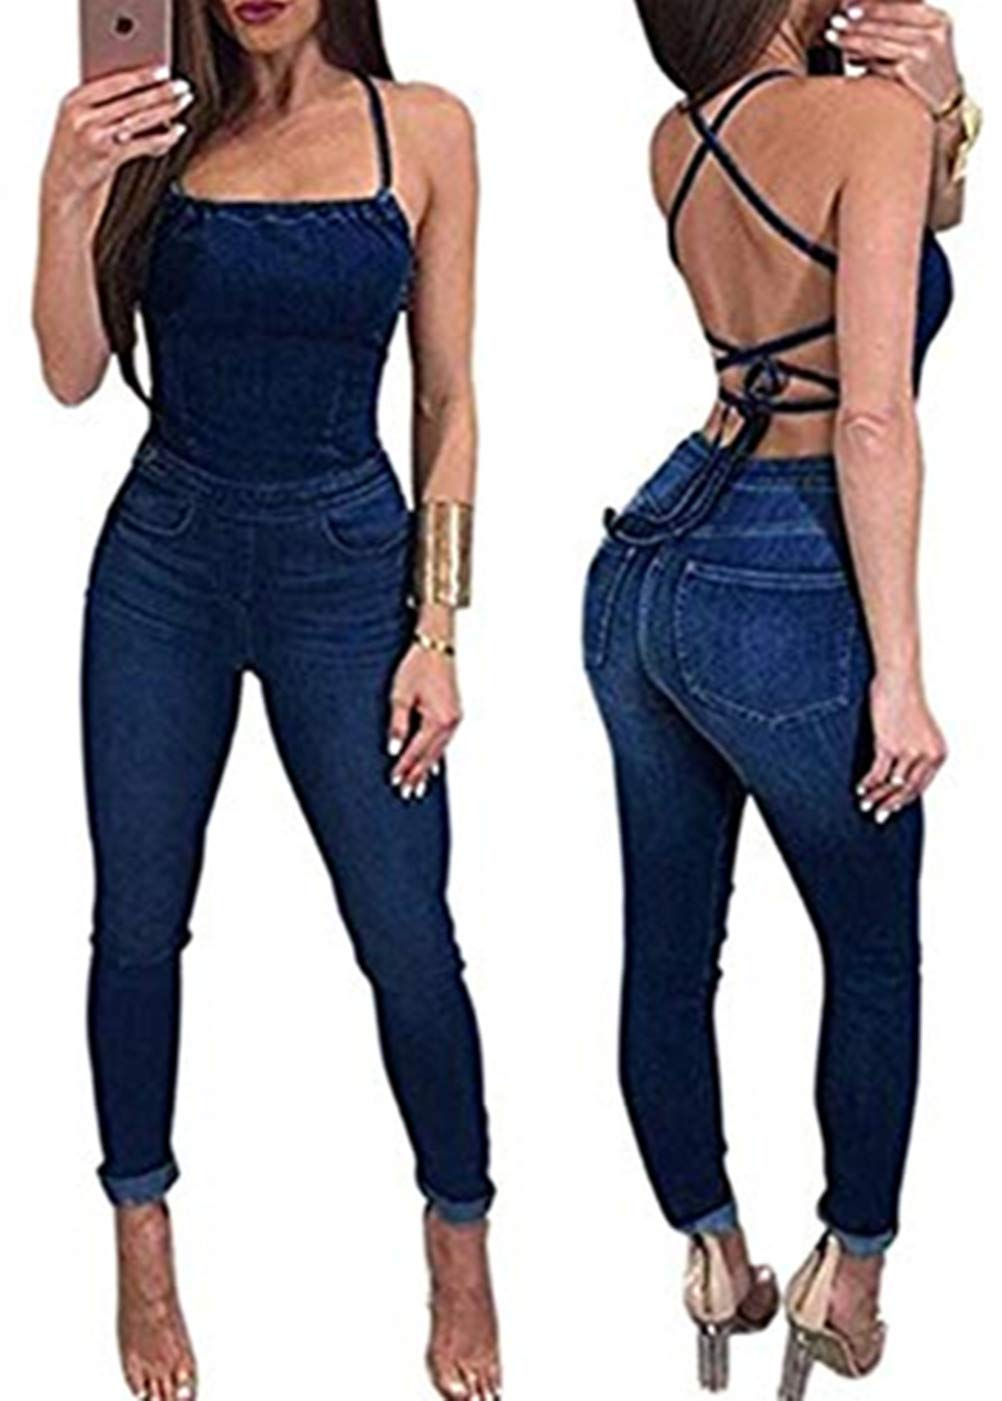 Women's Sexy Halter Strap Cross Back Long Denim Jumpsuit Backless Lace Up Jumpsuit Romper Size S (Dark Blue)